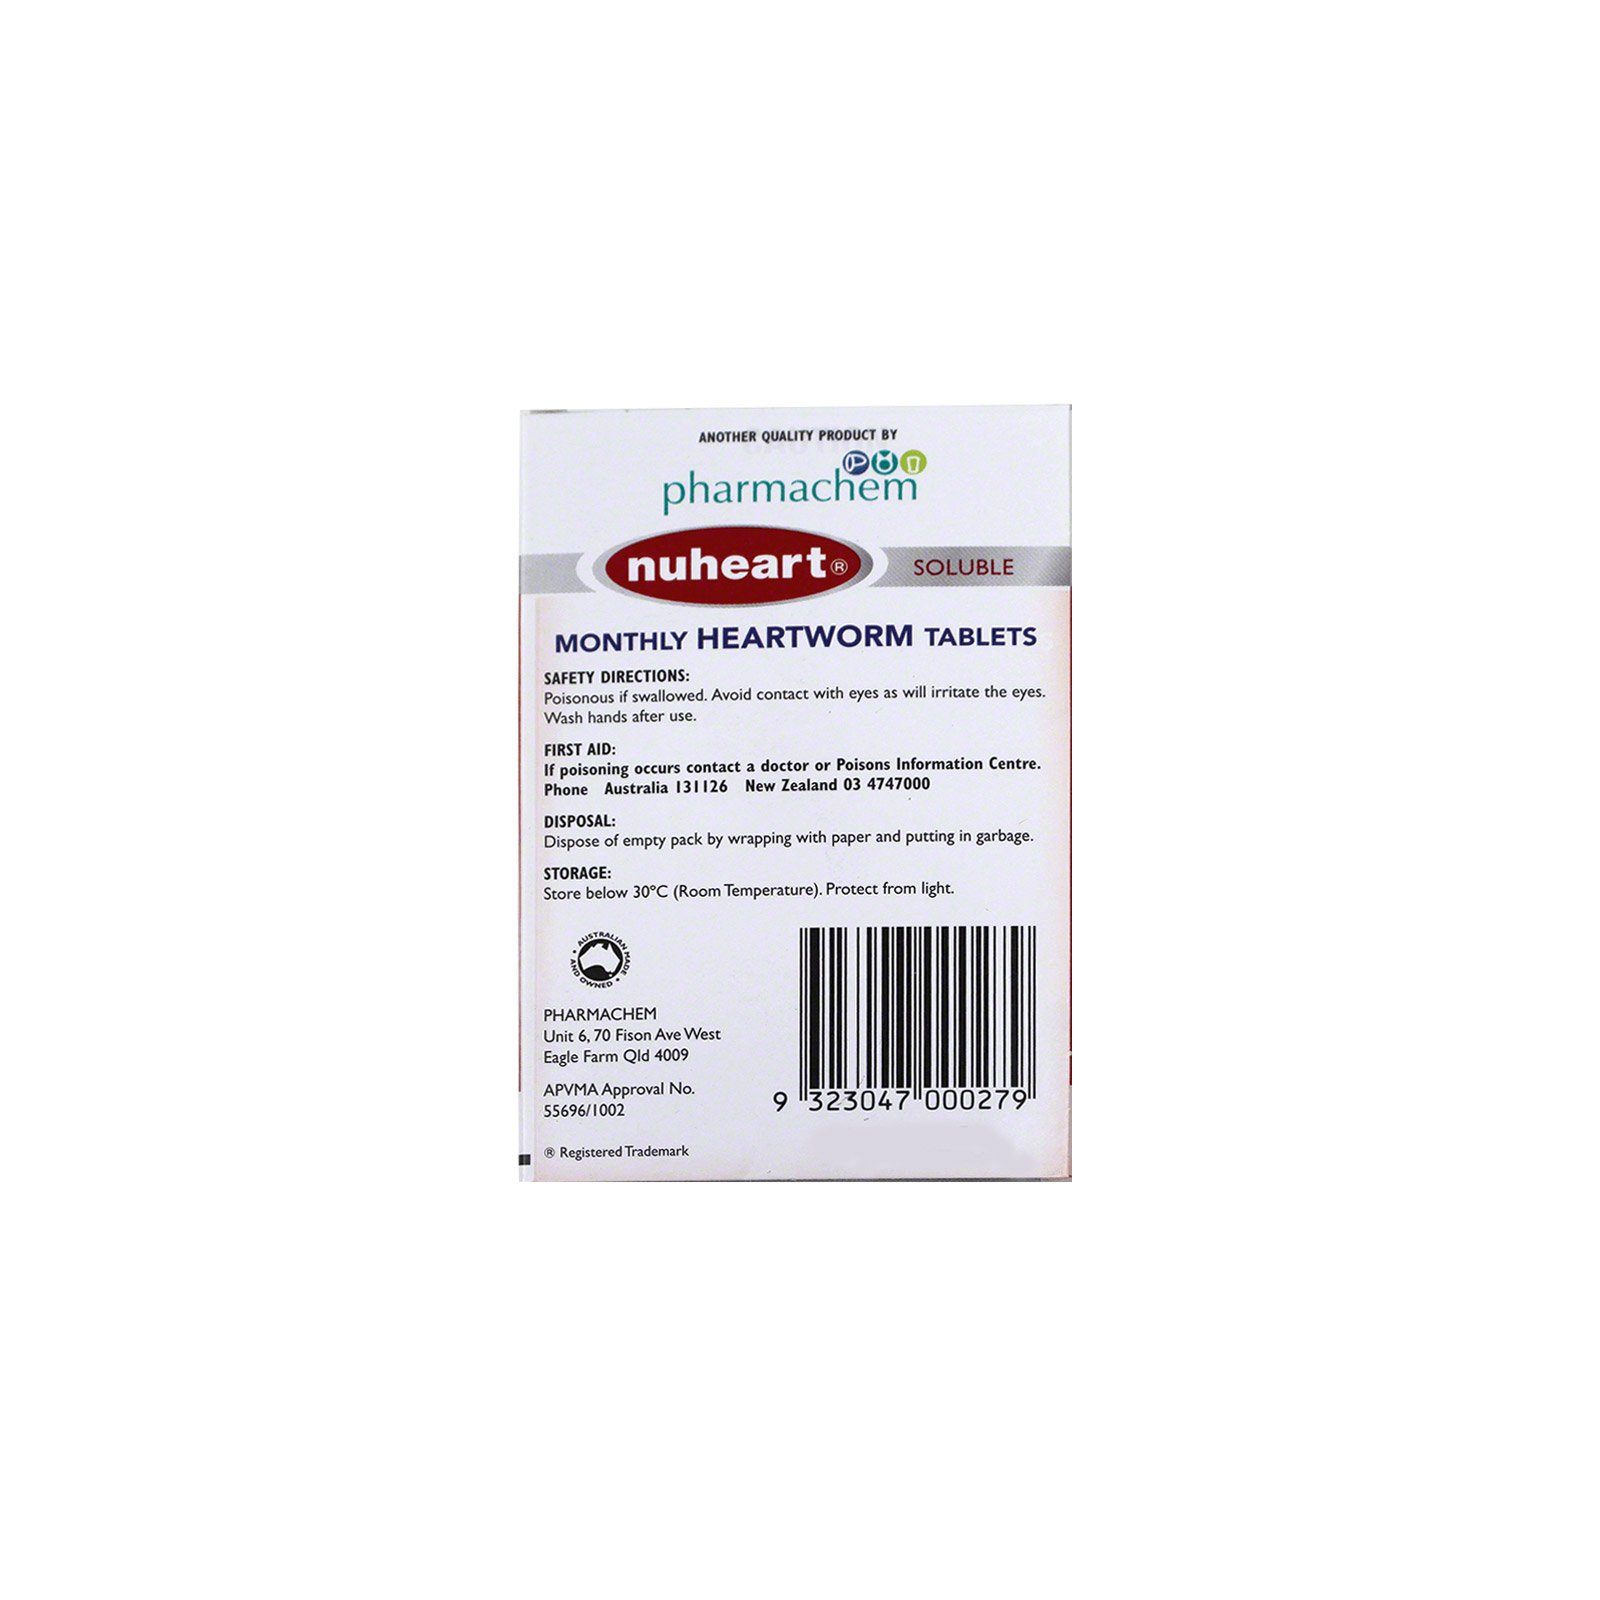 nuheart-for-dogs-generic-heartgard-heartguard-tabs-for-large-dogs-nuheart-23-to-45kg-red-back.jpg